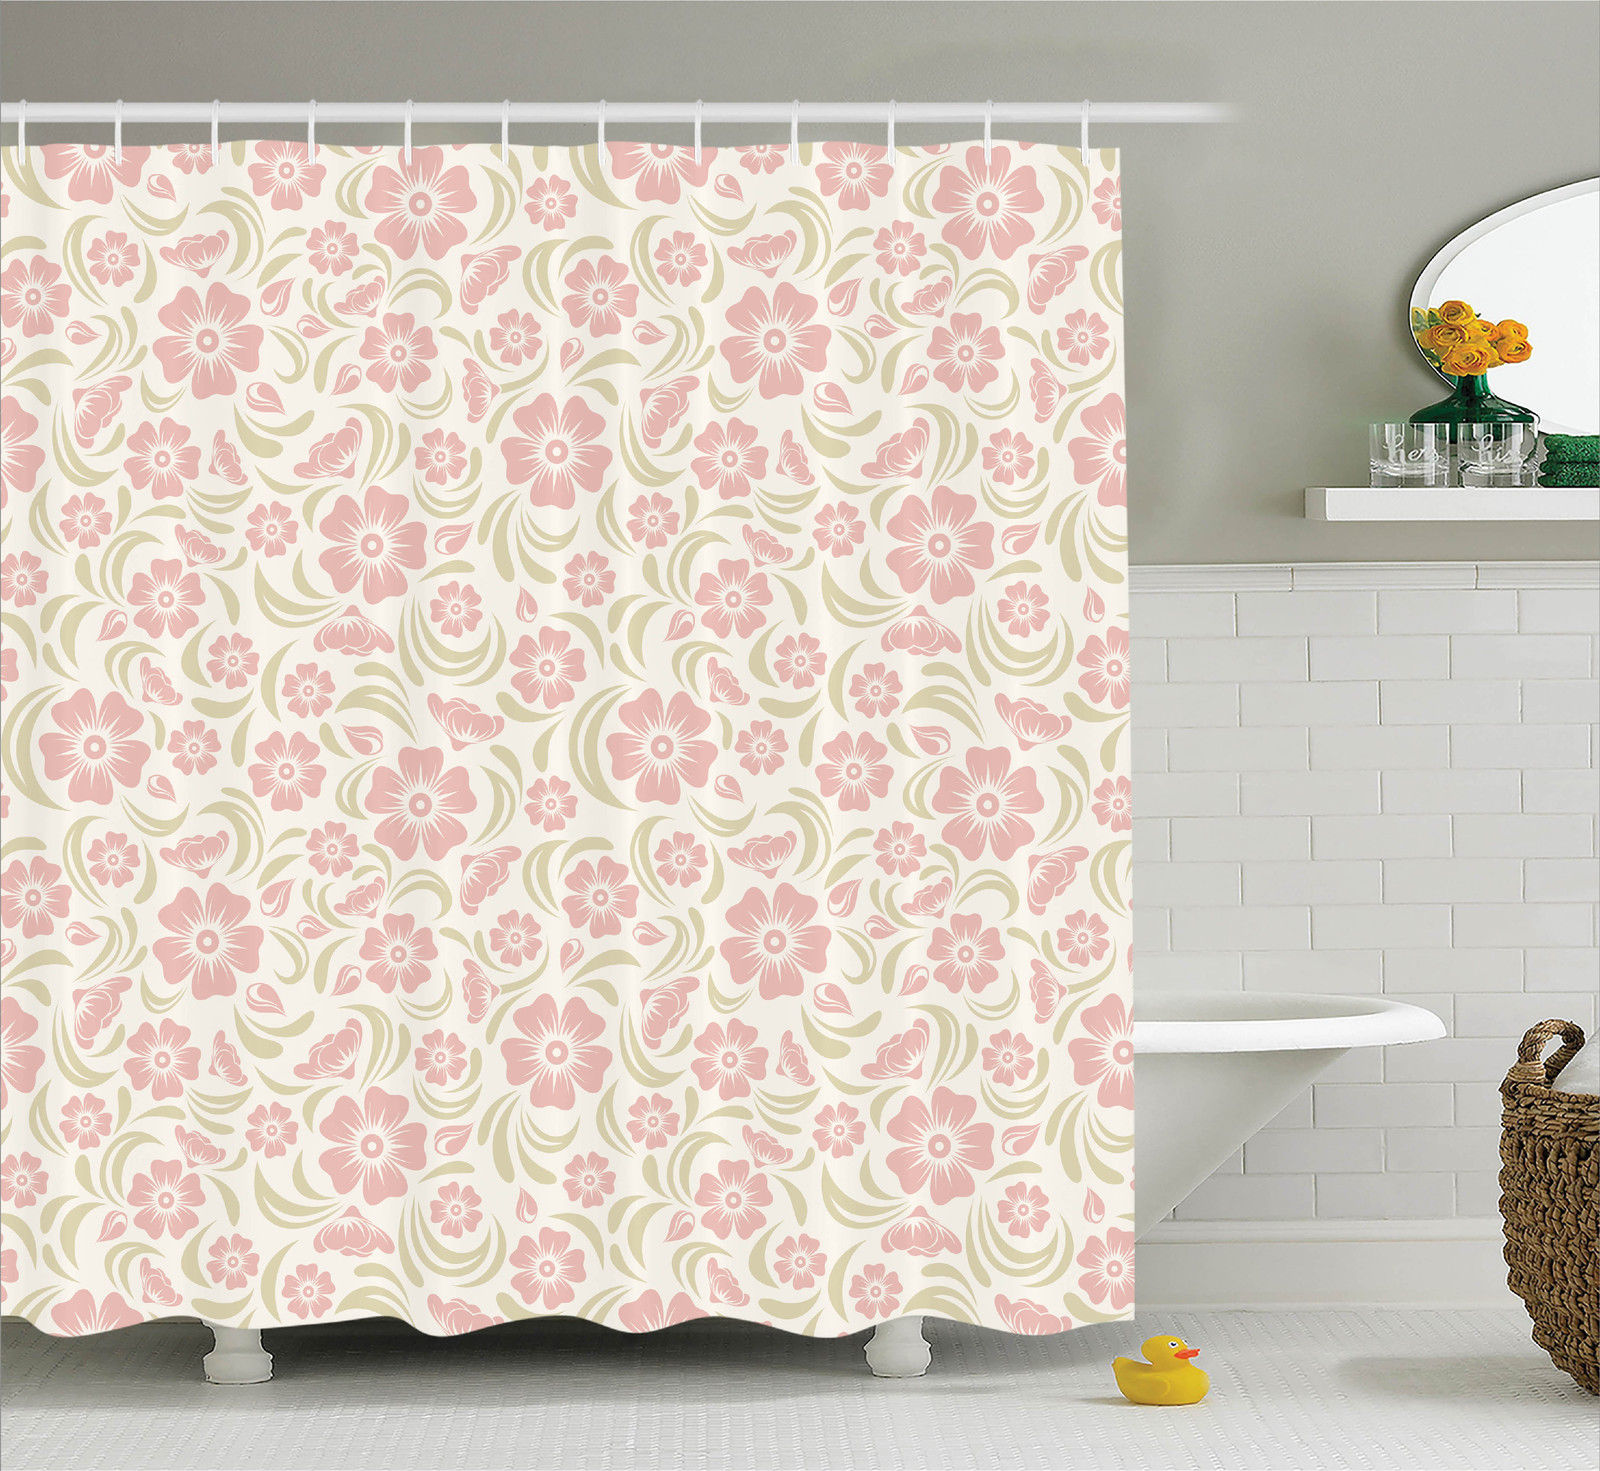 House Decor  Vintage Old Fashioned Floral Pattern Silhoue...